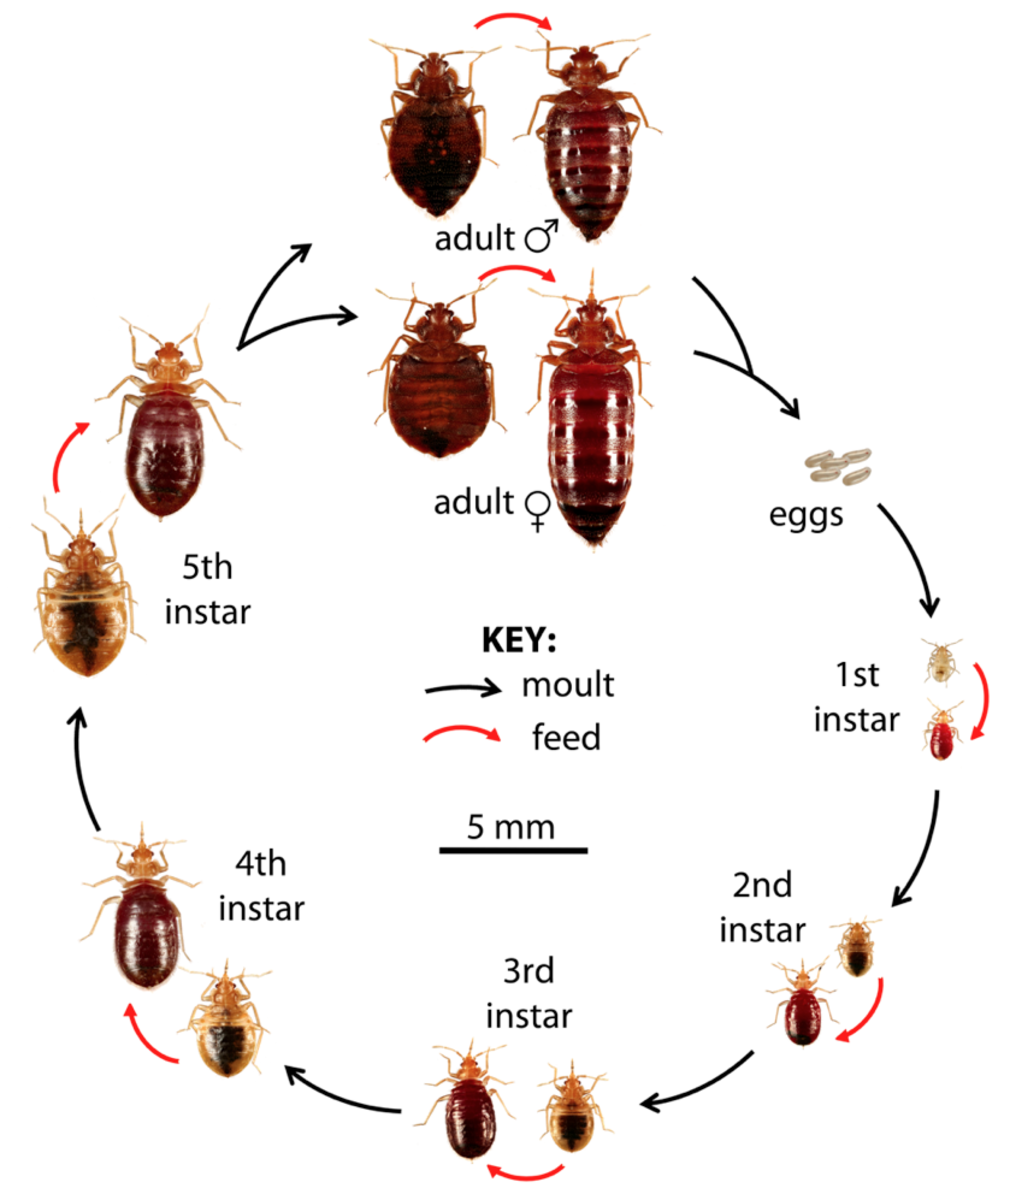 How To Get Rid Of Bed Bugs A Low Cost Diy Extermination Without Toxic Poisons Dengarden Home And Garden